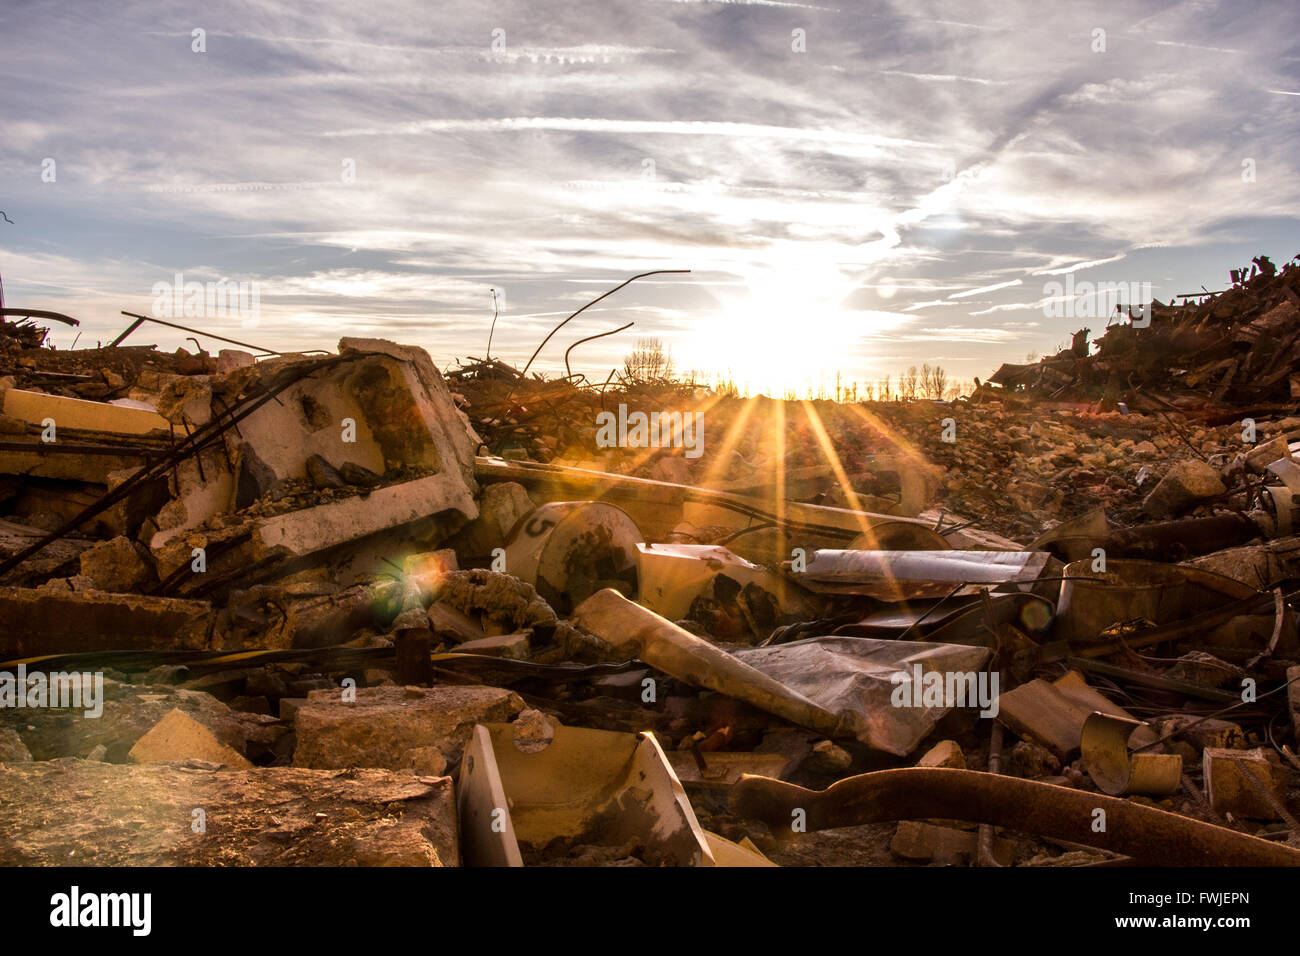 Demolished Building On Field Against Sky During Sunny Day - Stock Image